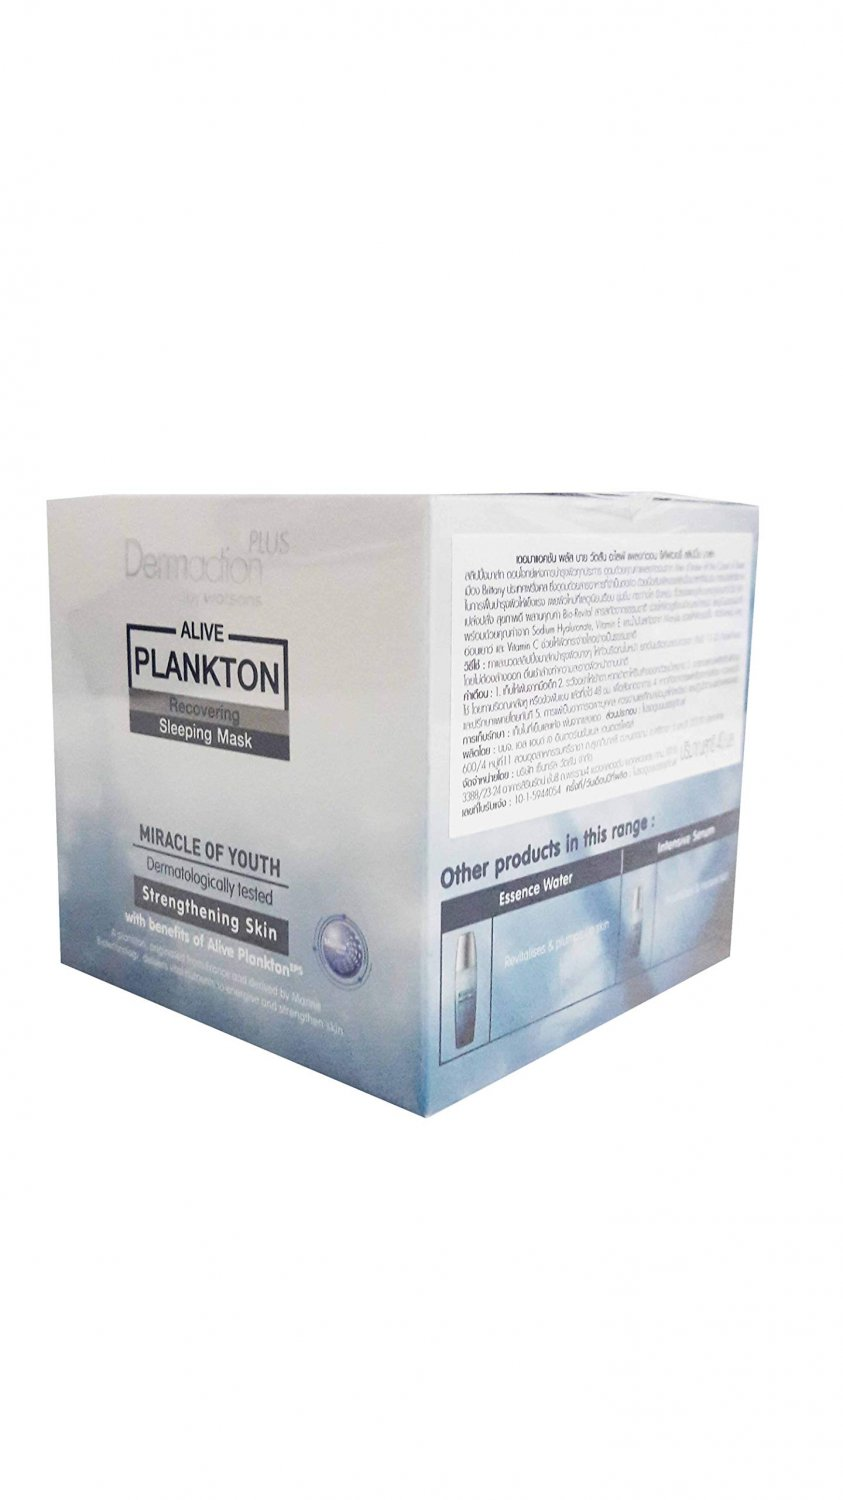 Dermaction Plus by Watsons Alive Plankton Recovering Sleeping Mask. Mira